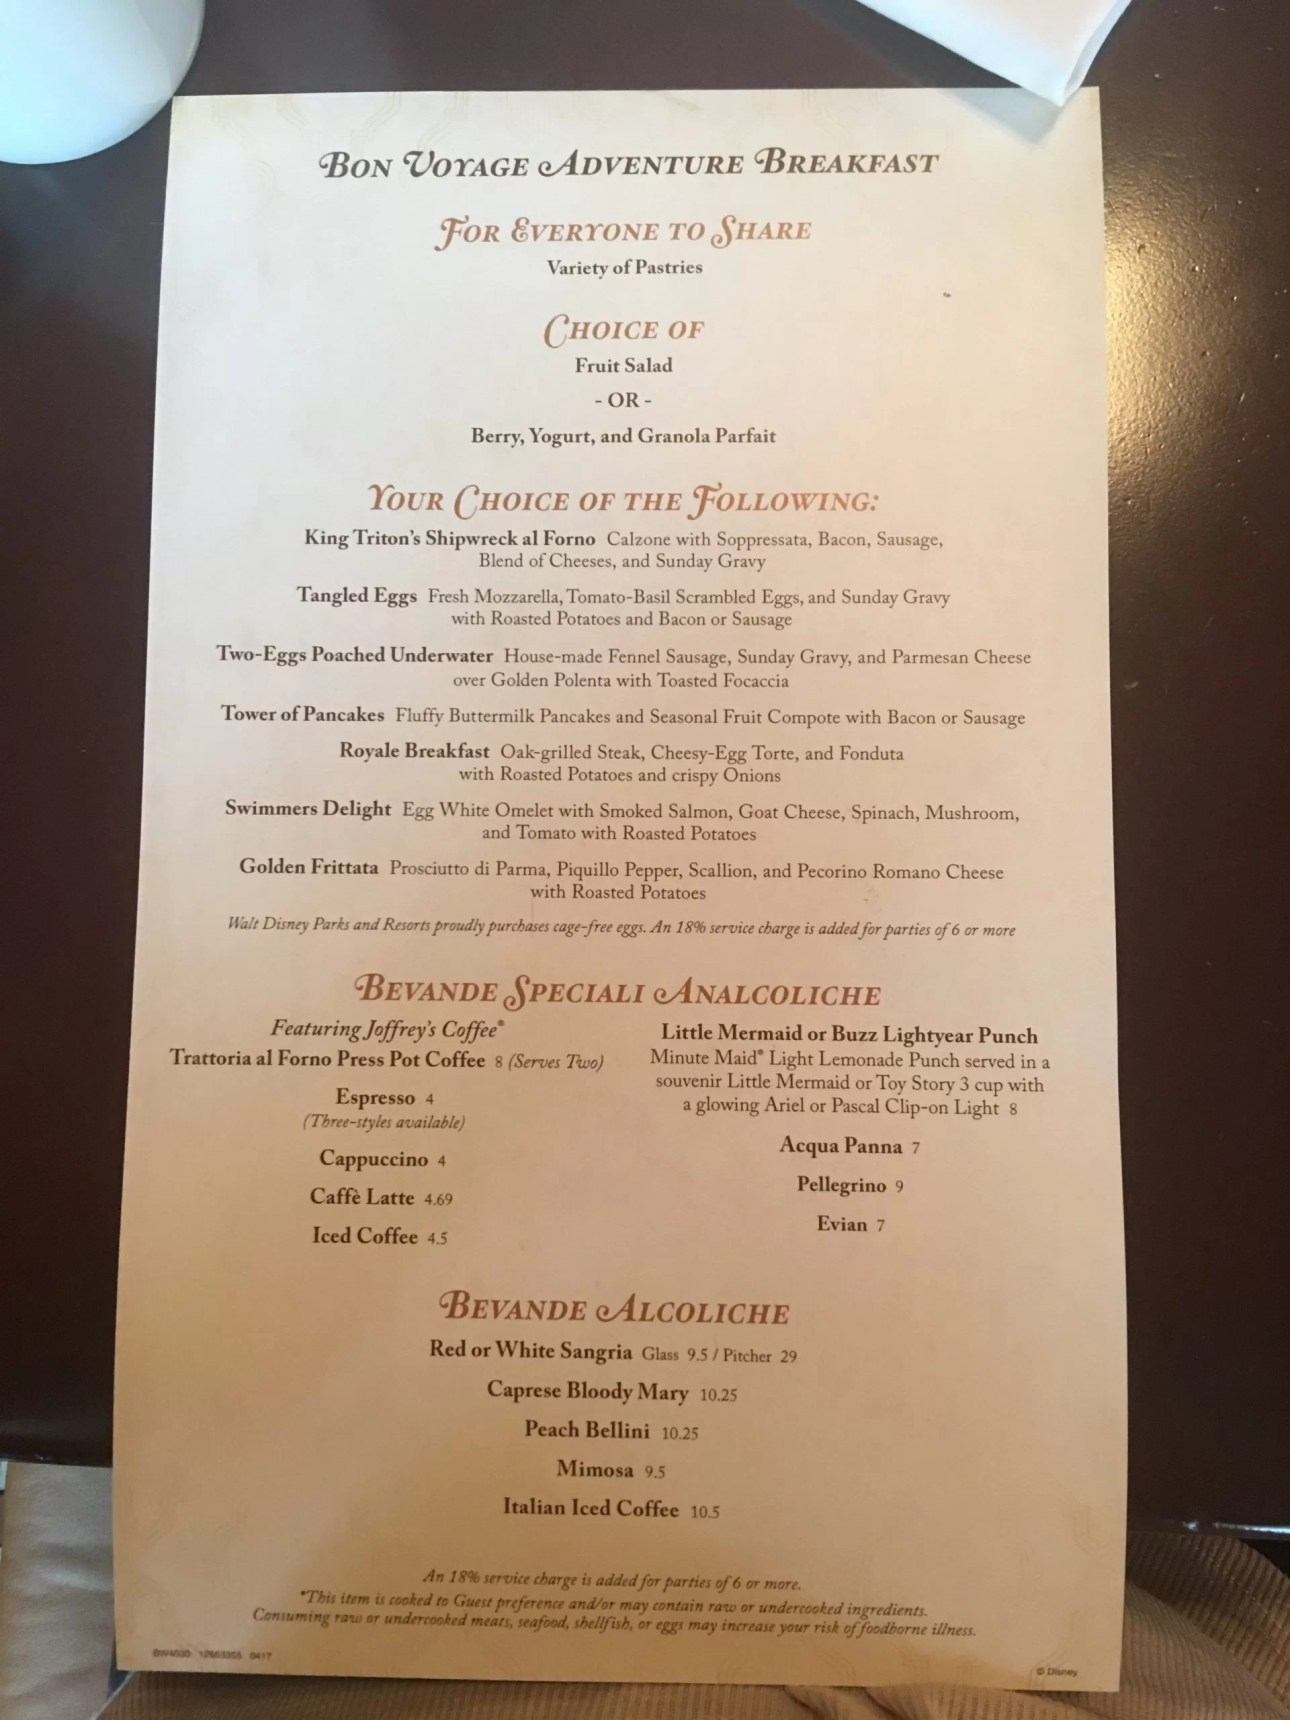 Trattoria al Forno: Walt Disney World's Bon Voyage Breakfast menu